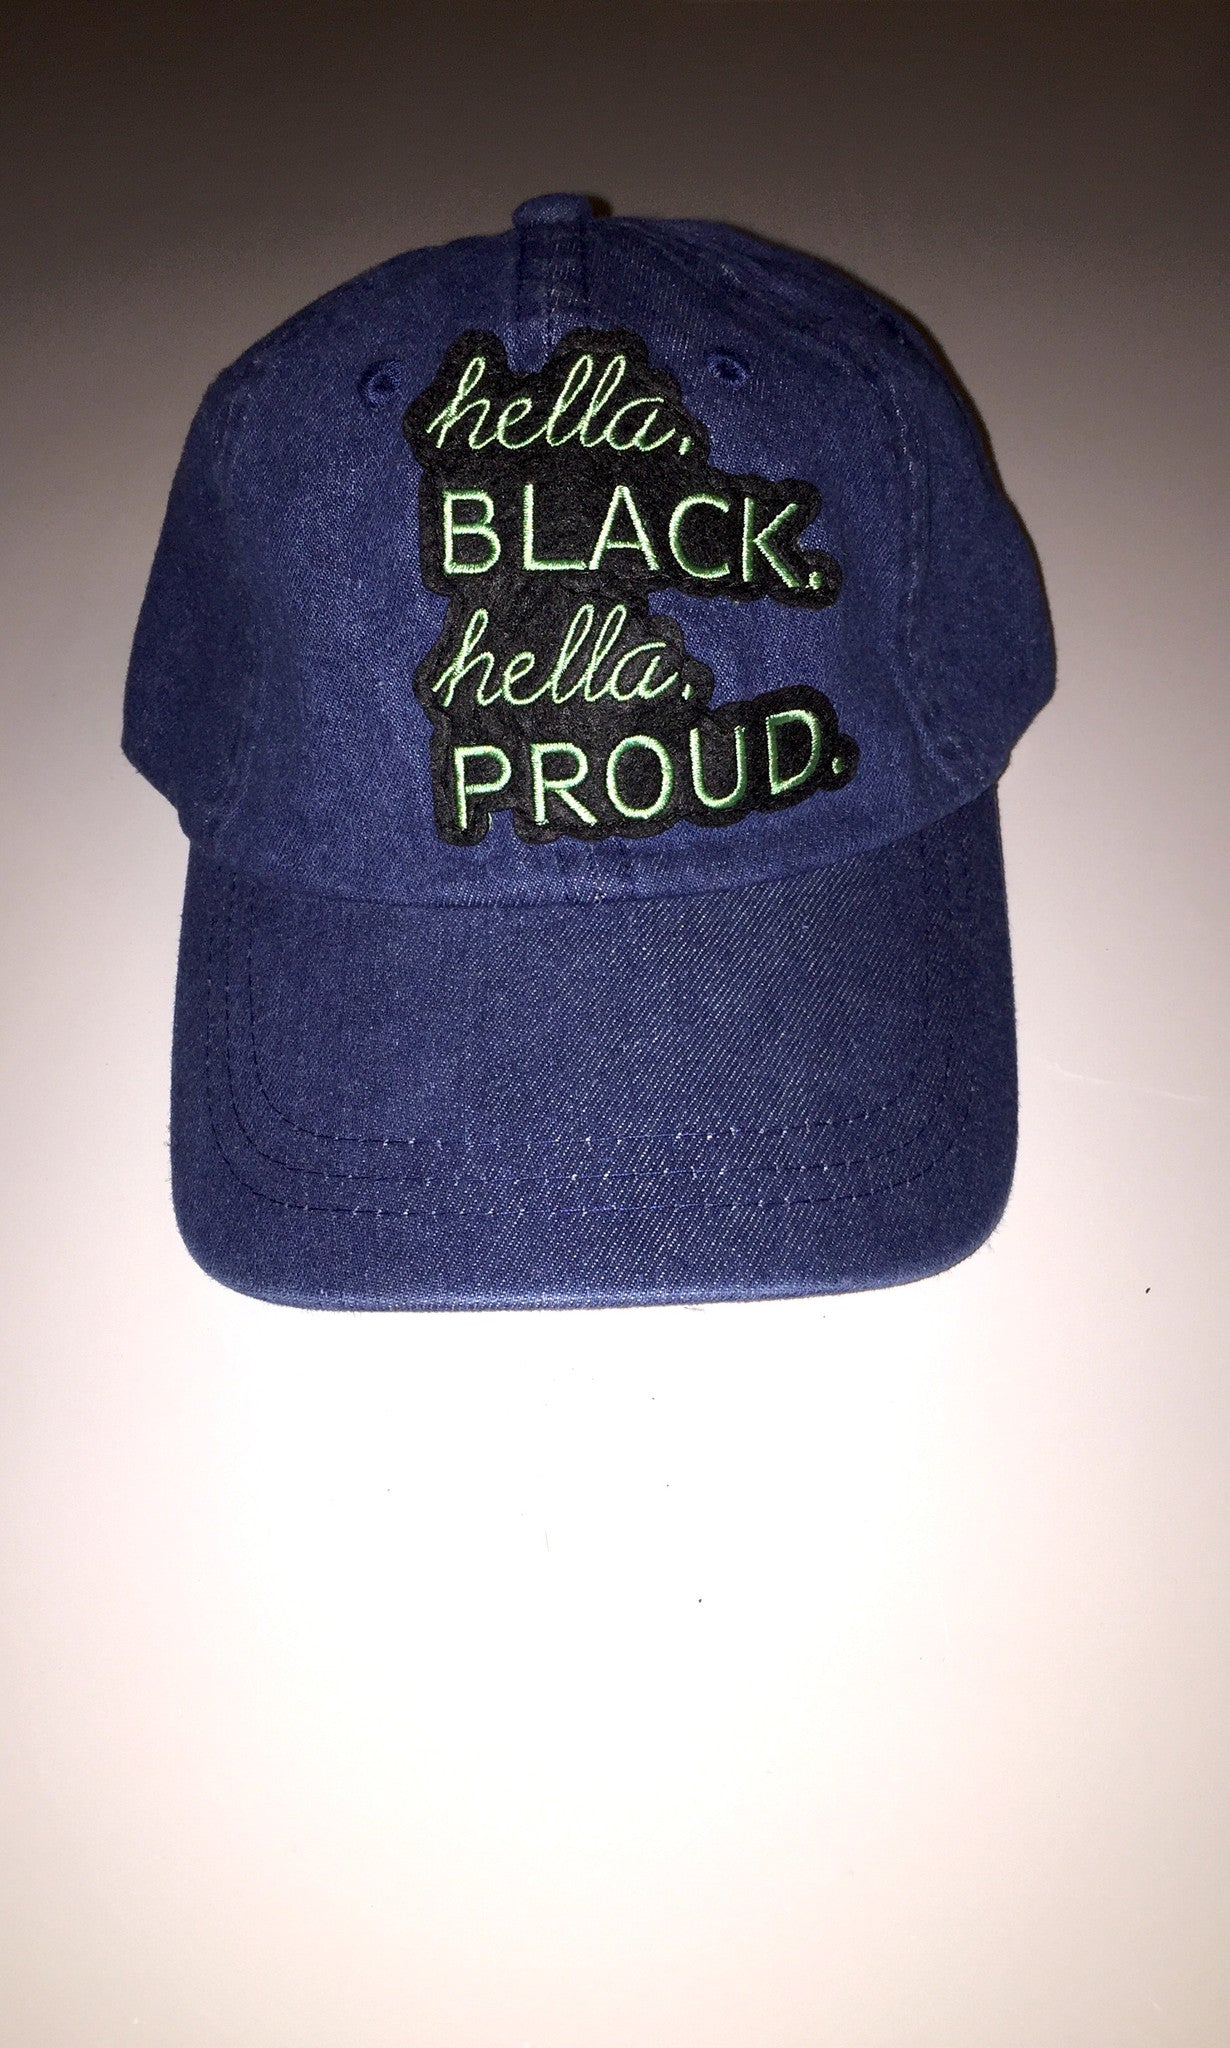 All Dem' Shades Denim Cap - (More Options Available)